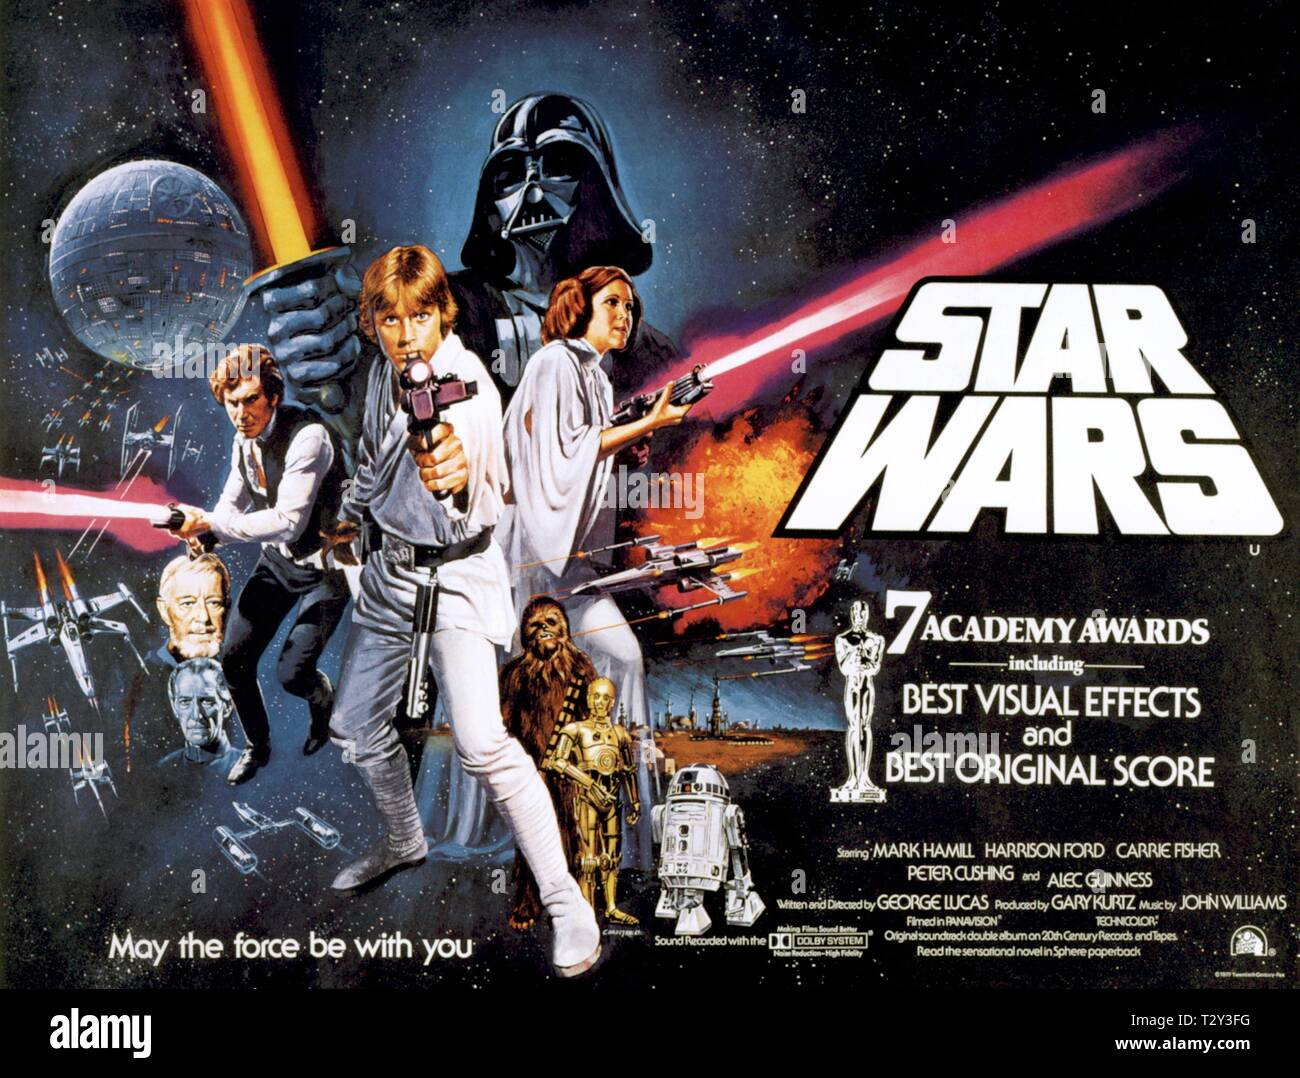 PETER CUSHING, ALEC GUINNESS, HARRISON FORD, MARK HAMILL, DAVID PROWSE, PETER MAYHEW, ANTHONY DANIELS, KENNY BAKER, CARRIE FISHER POSTER - Stock Image